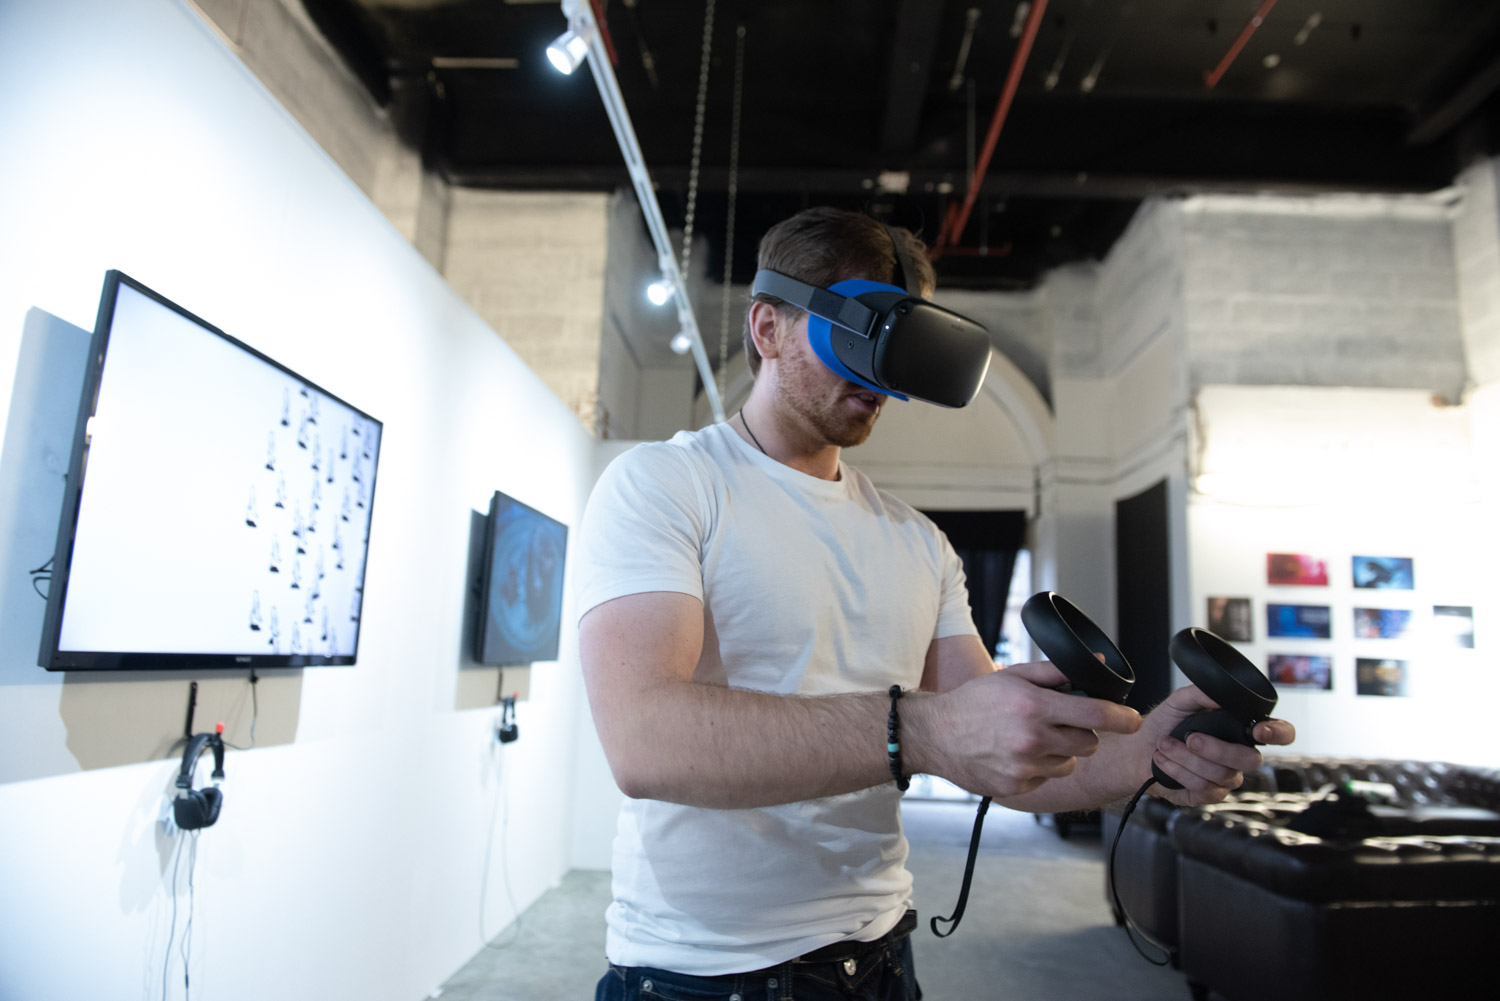 Virtual Reality tested by young festival attendee at the Neo Gallery